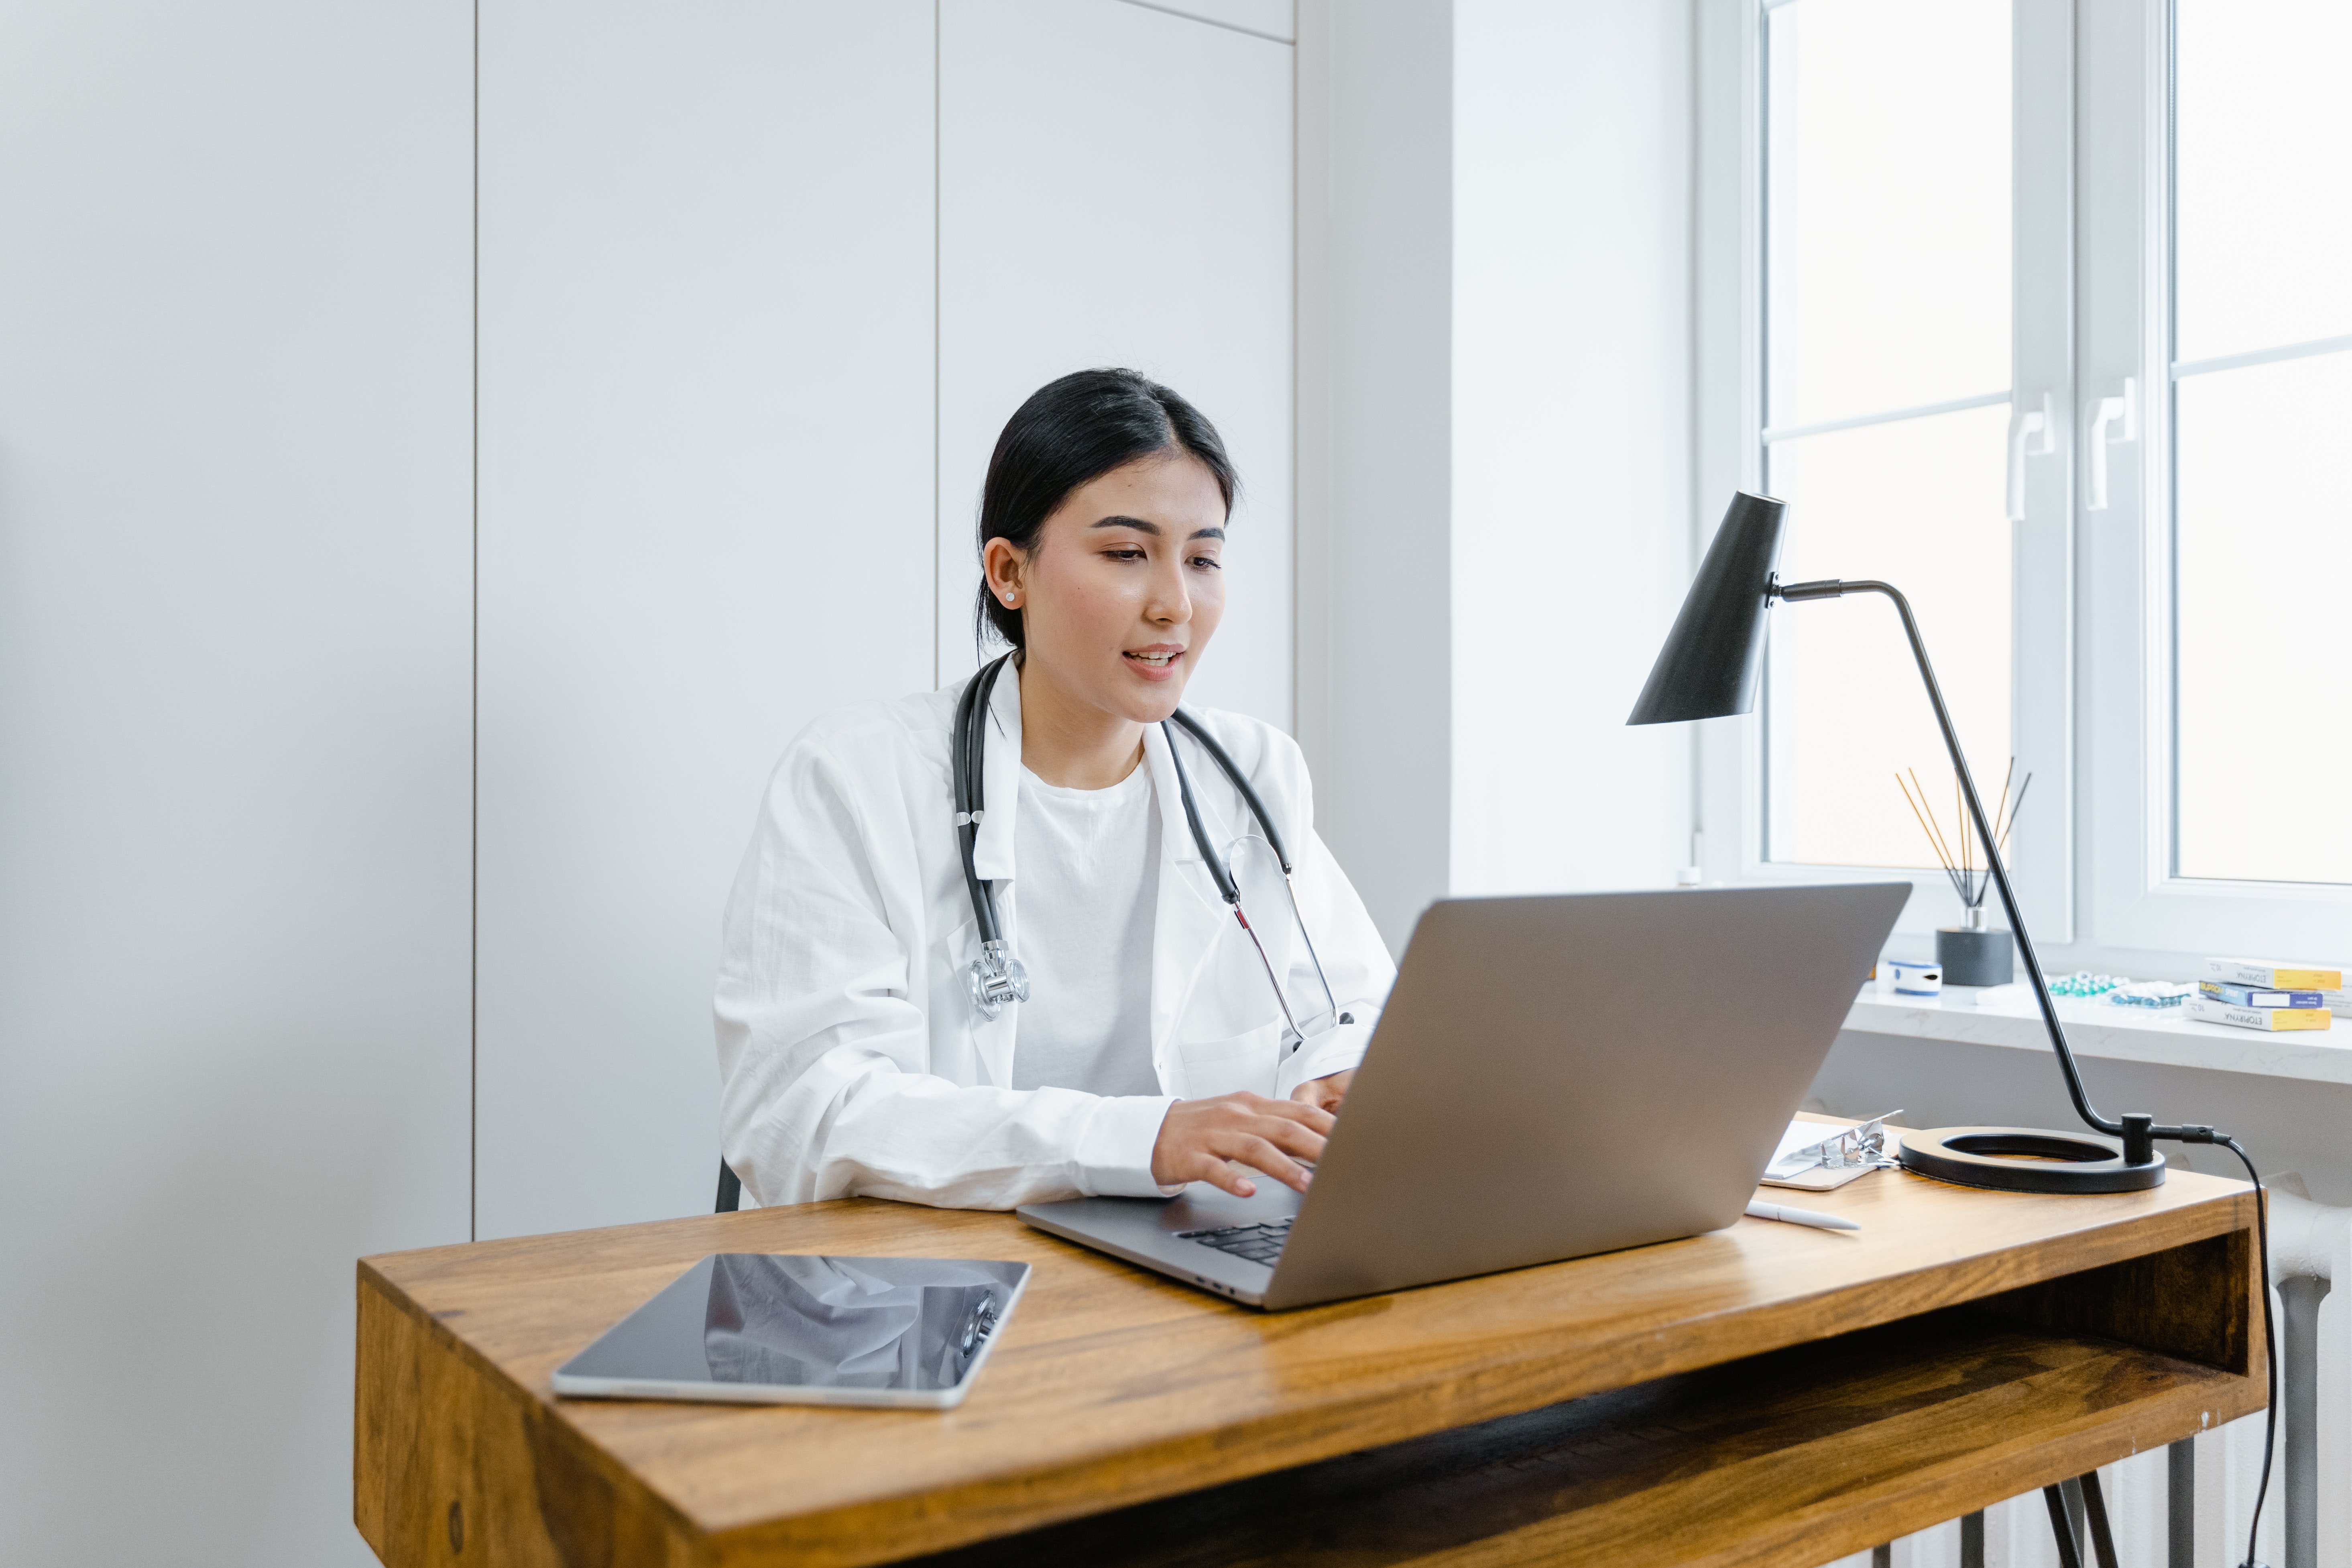 HIPAA Compliant Messaging in the Cloud